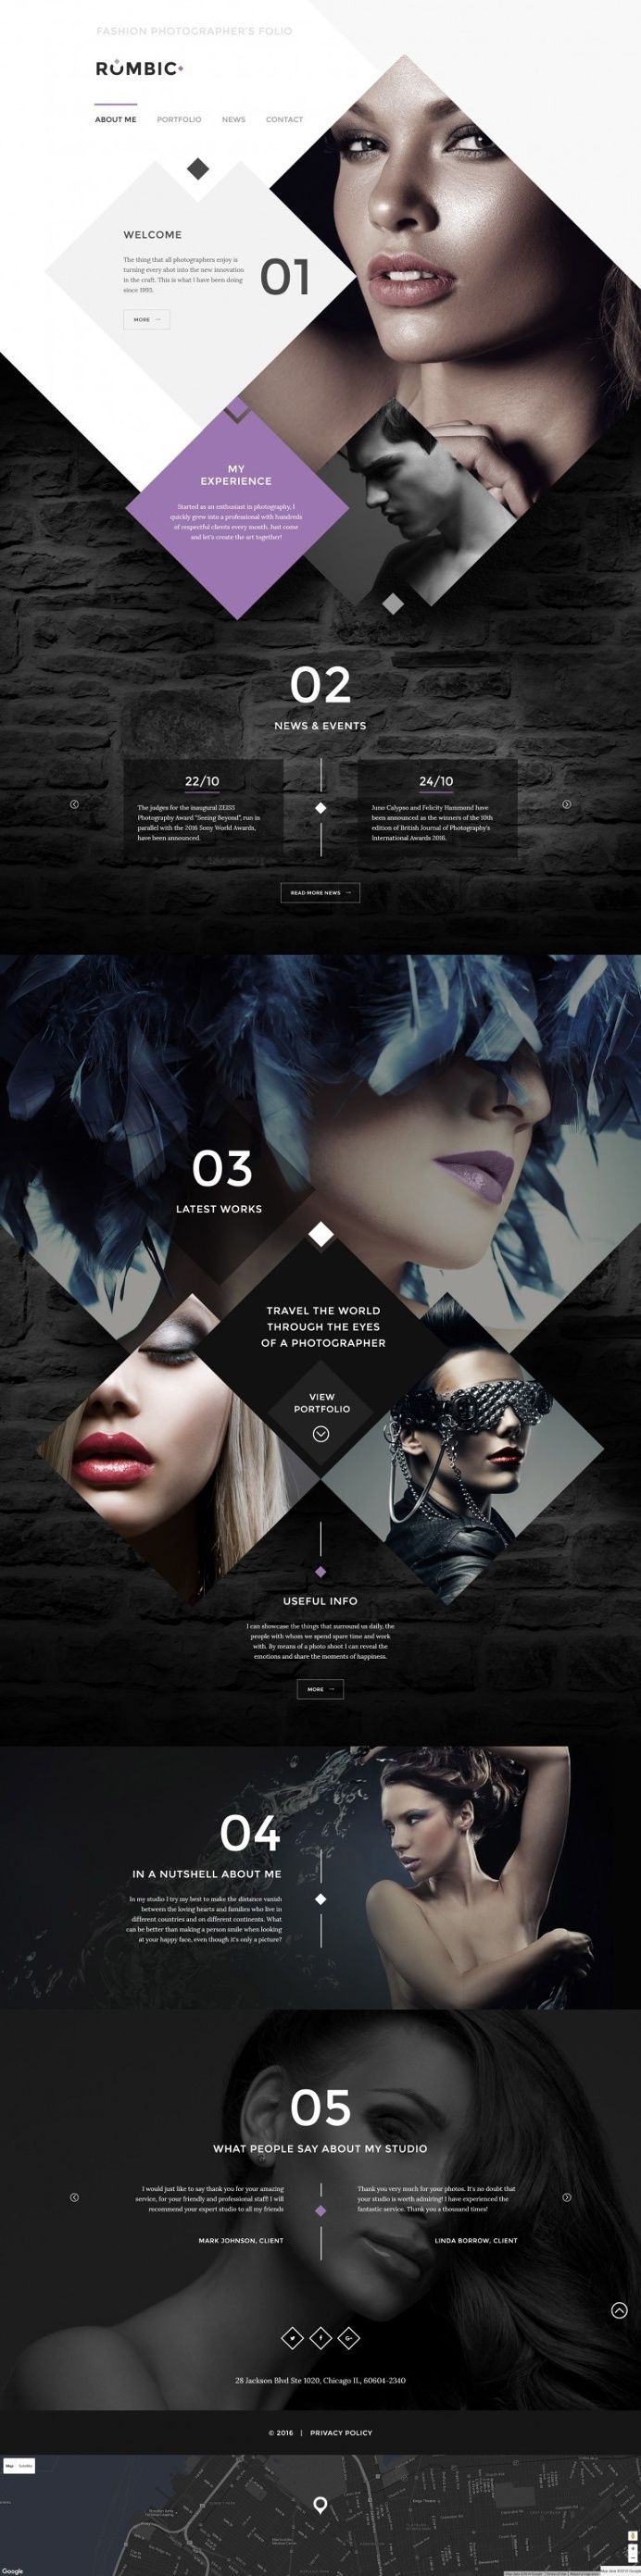 Rombic Website Template in Web design